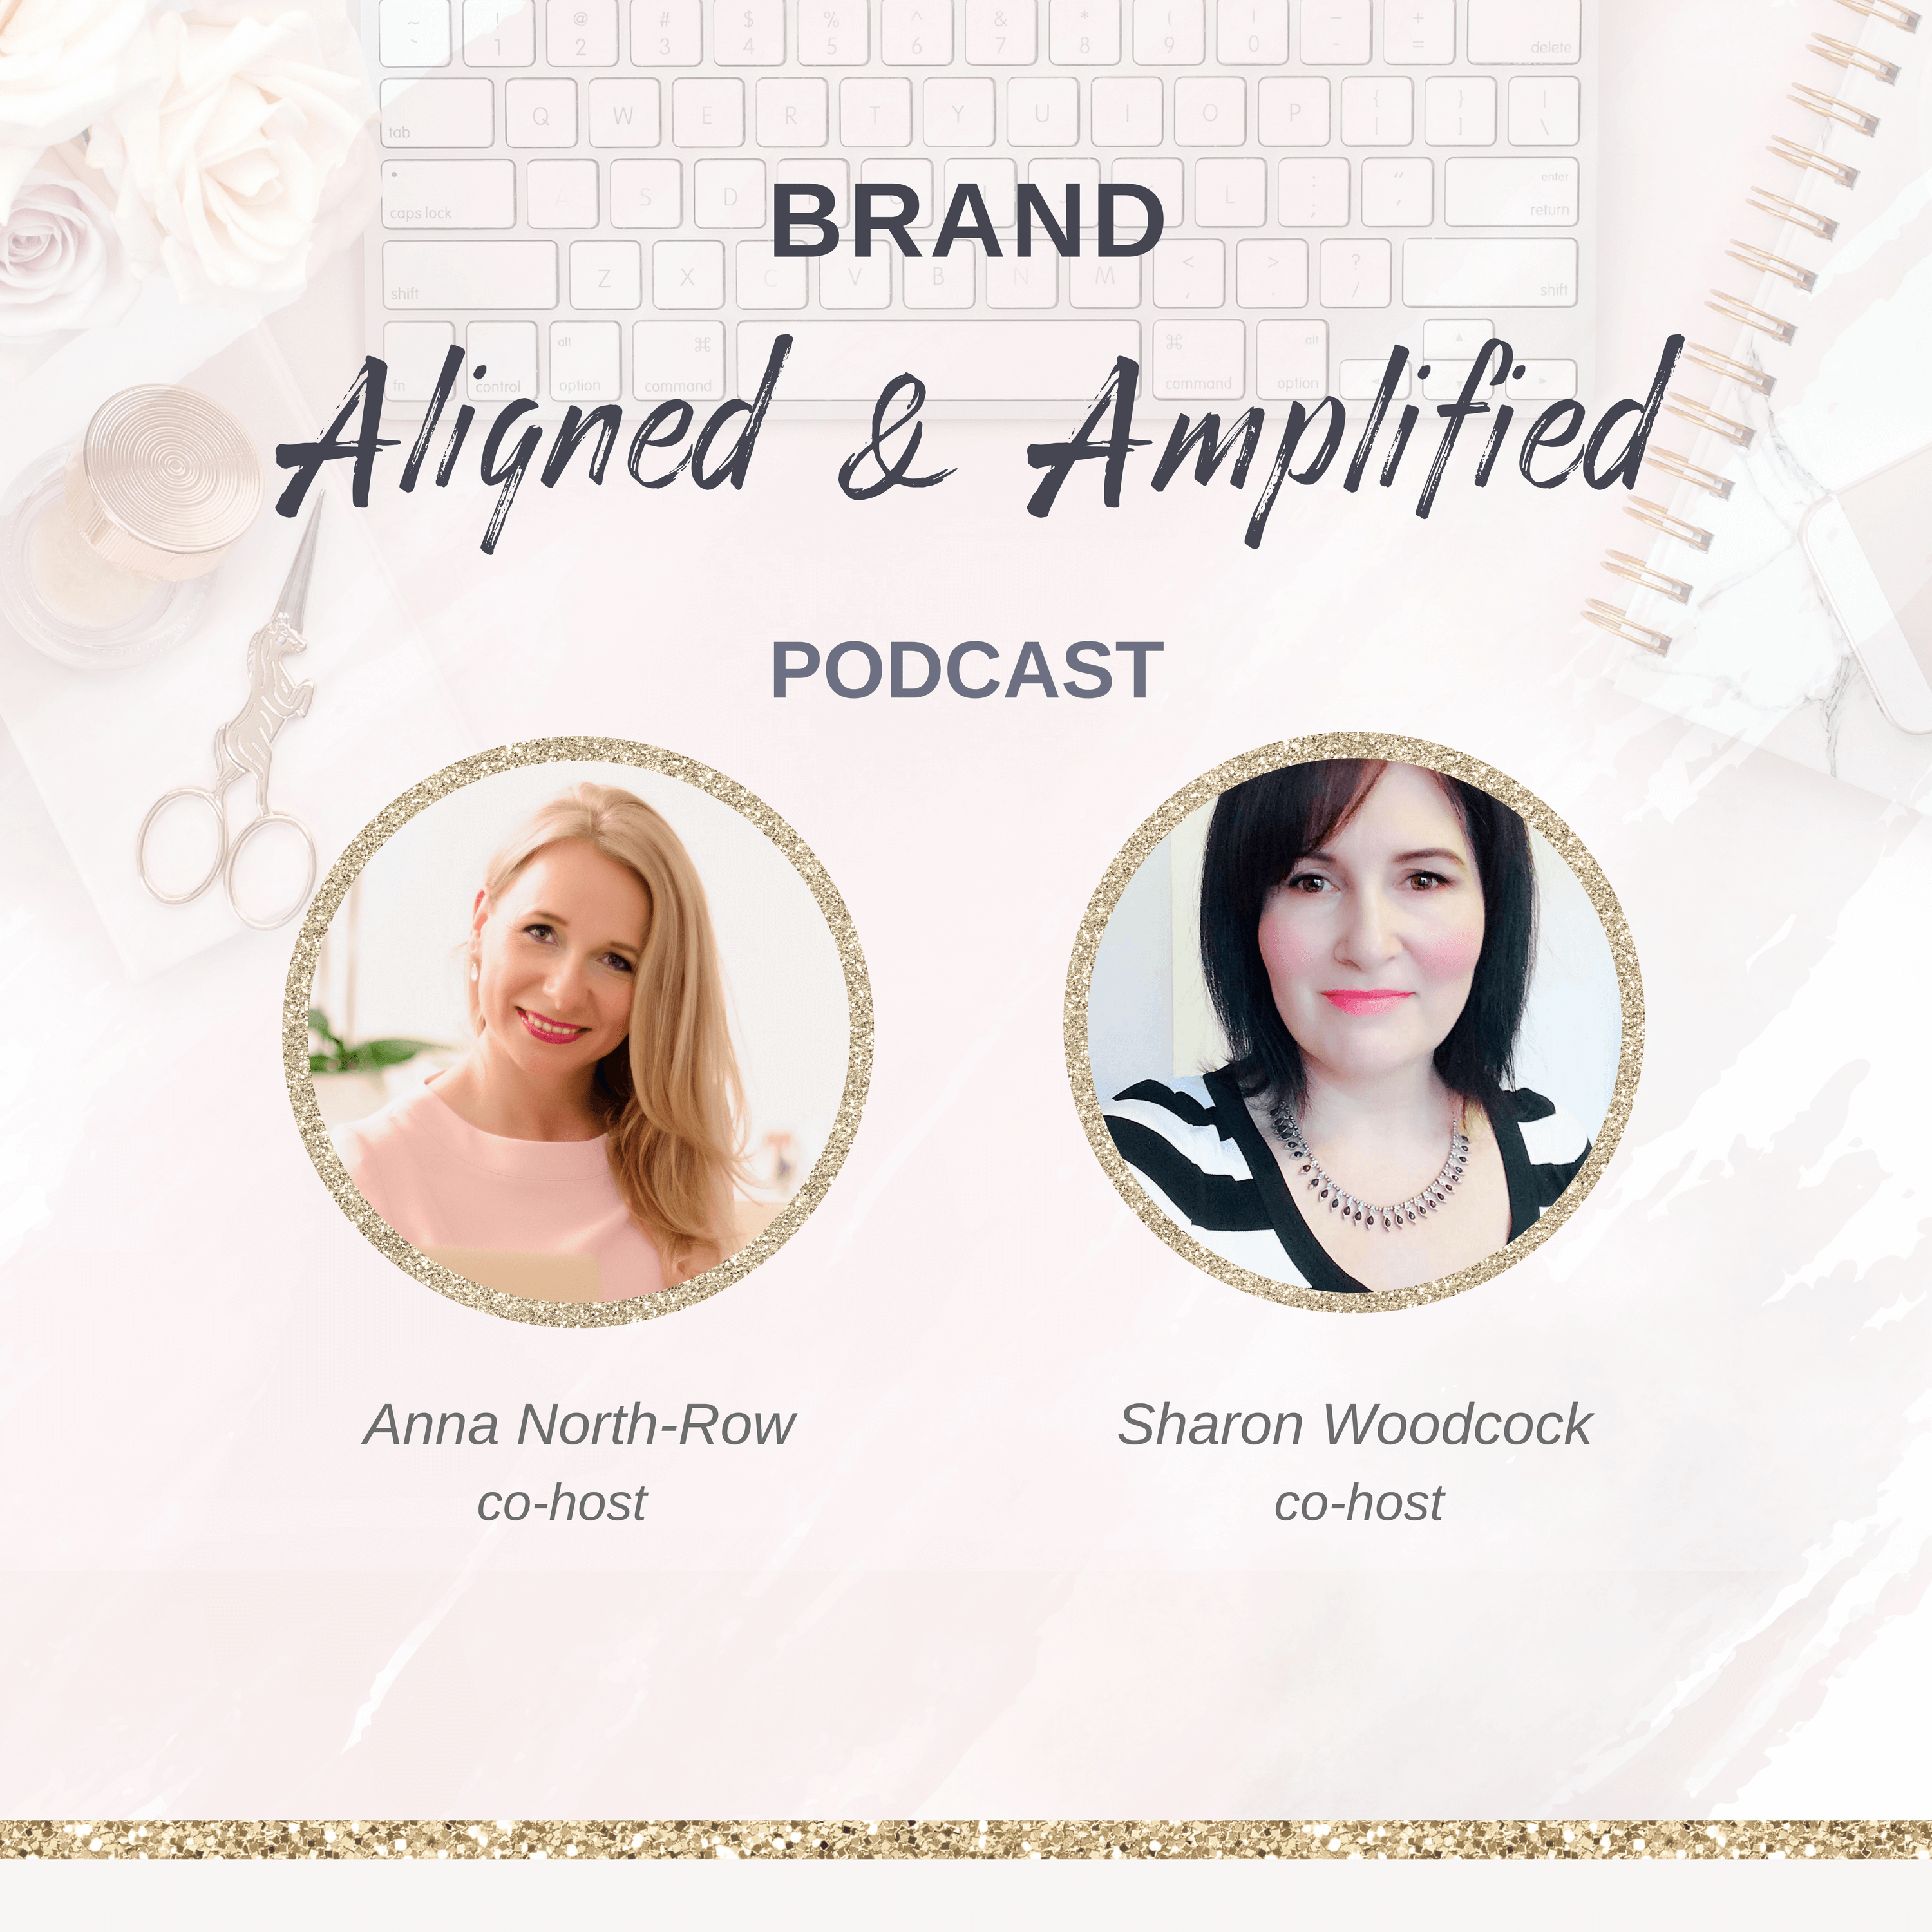 Brand Aligned & Amplified show art